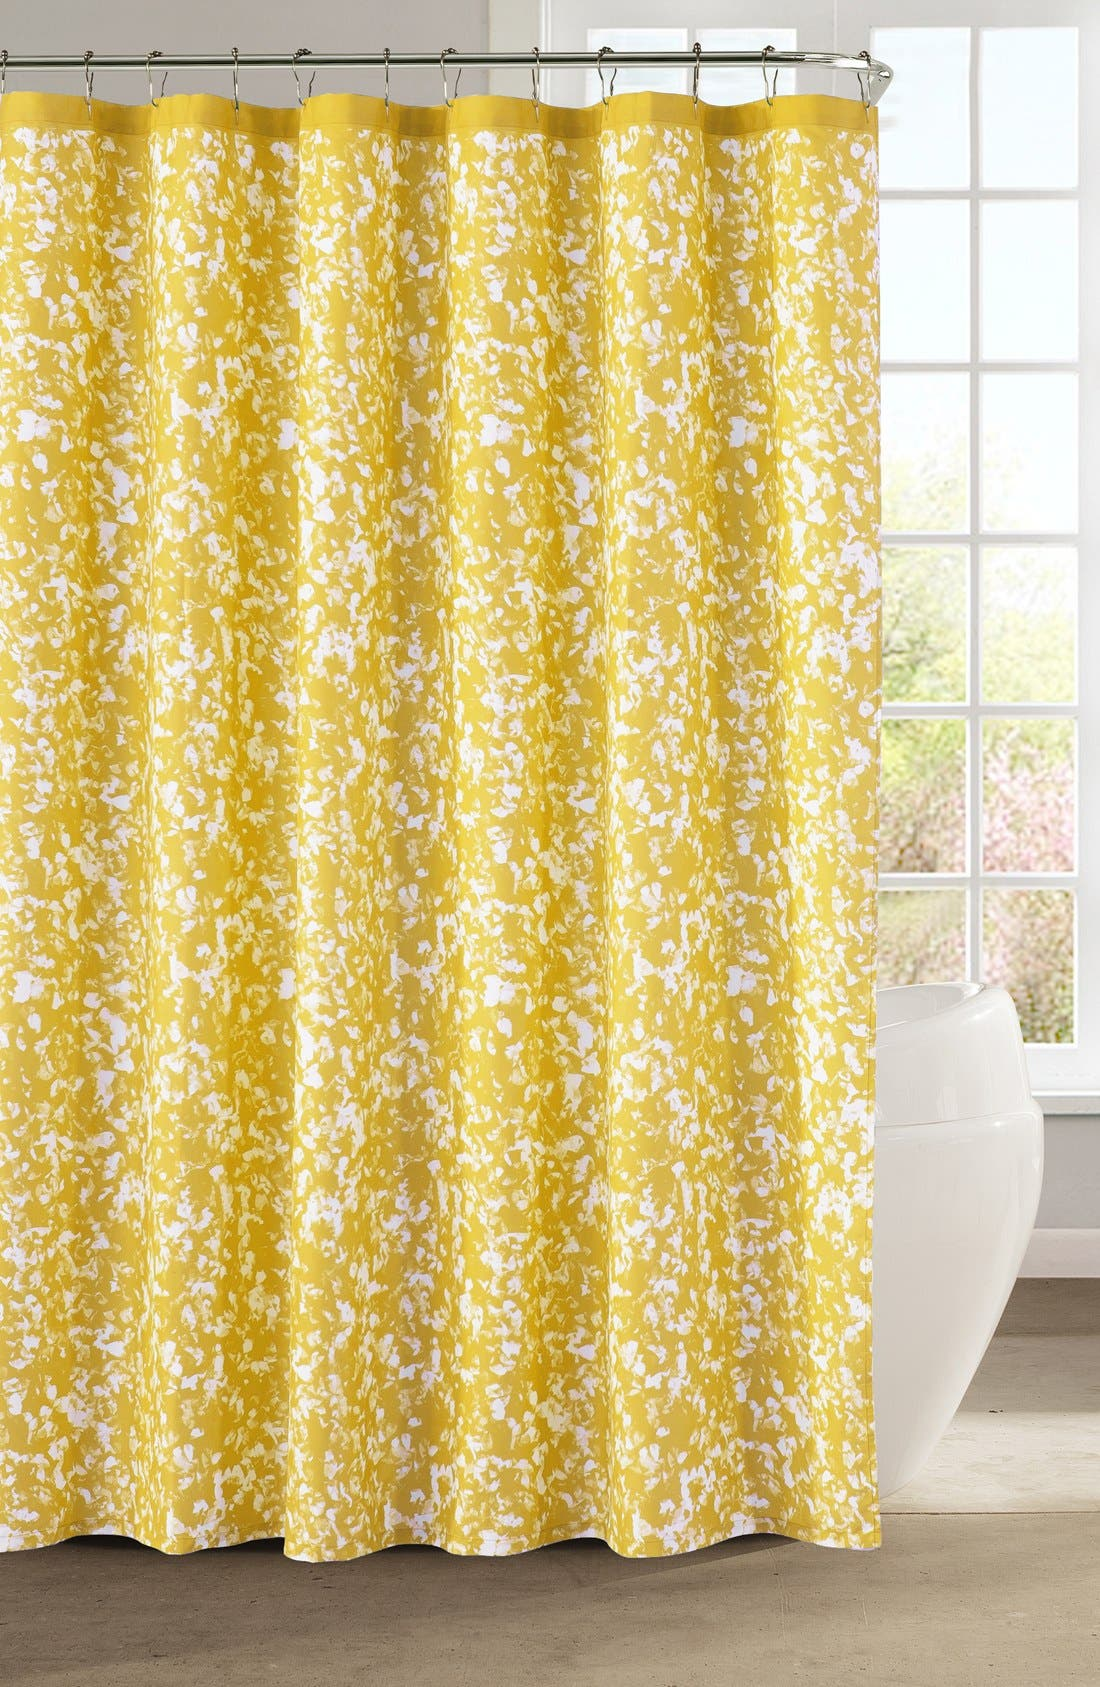 kensie 'Susie' Shower Curtain